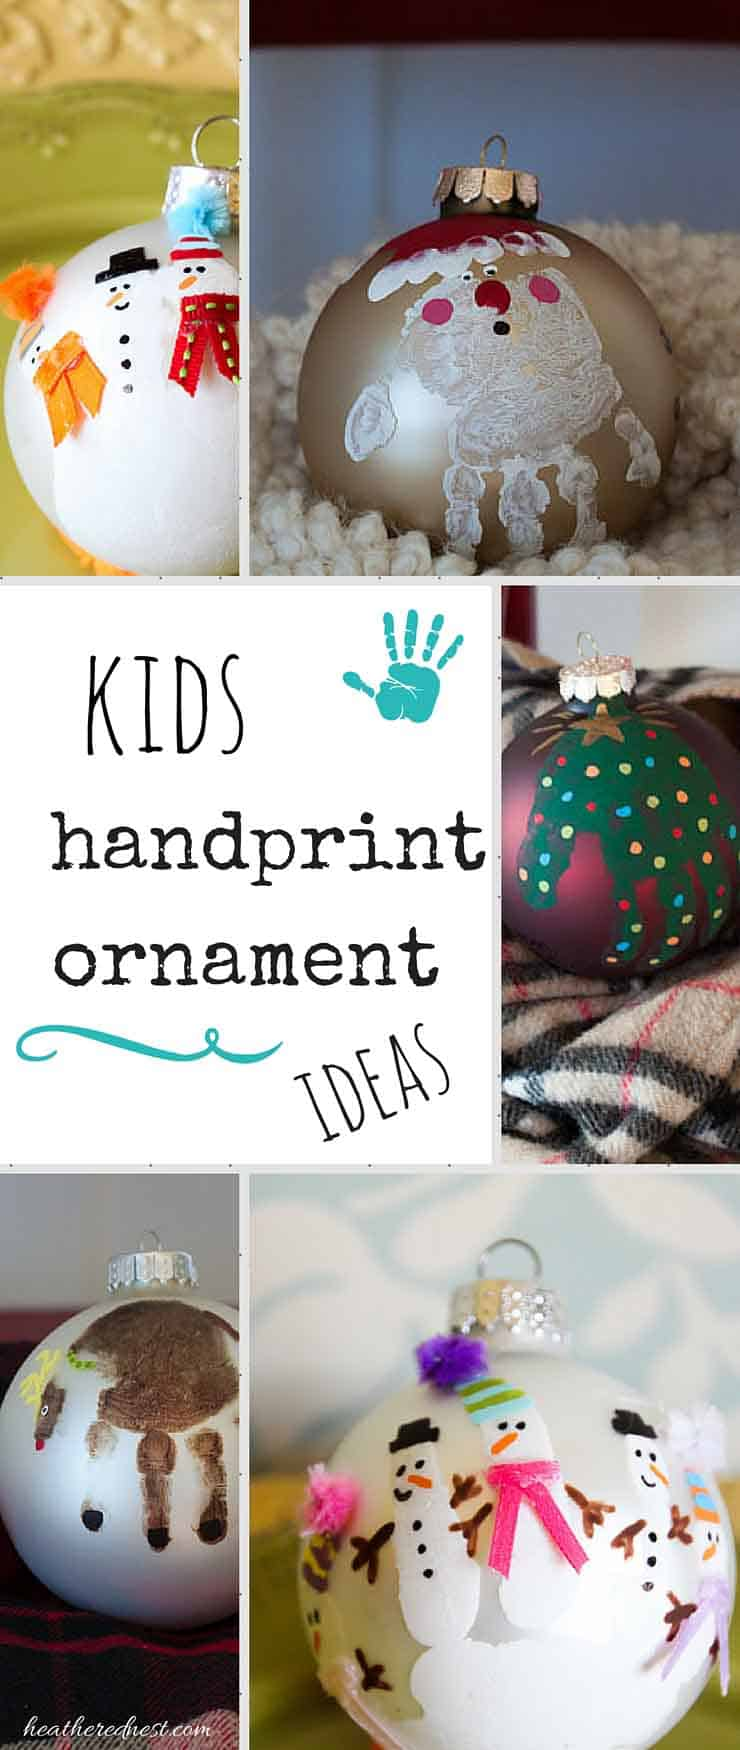 Handprint Ornament and DIY Christmas Ornament Ideas | The Heathered Nest